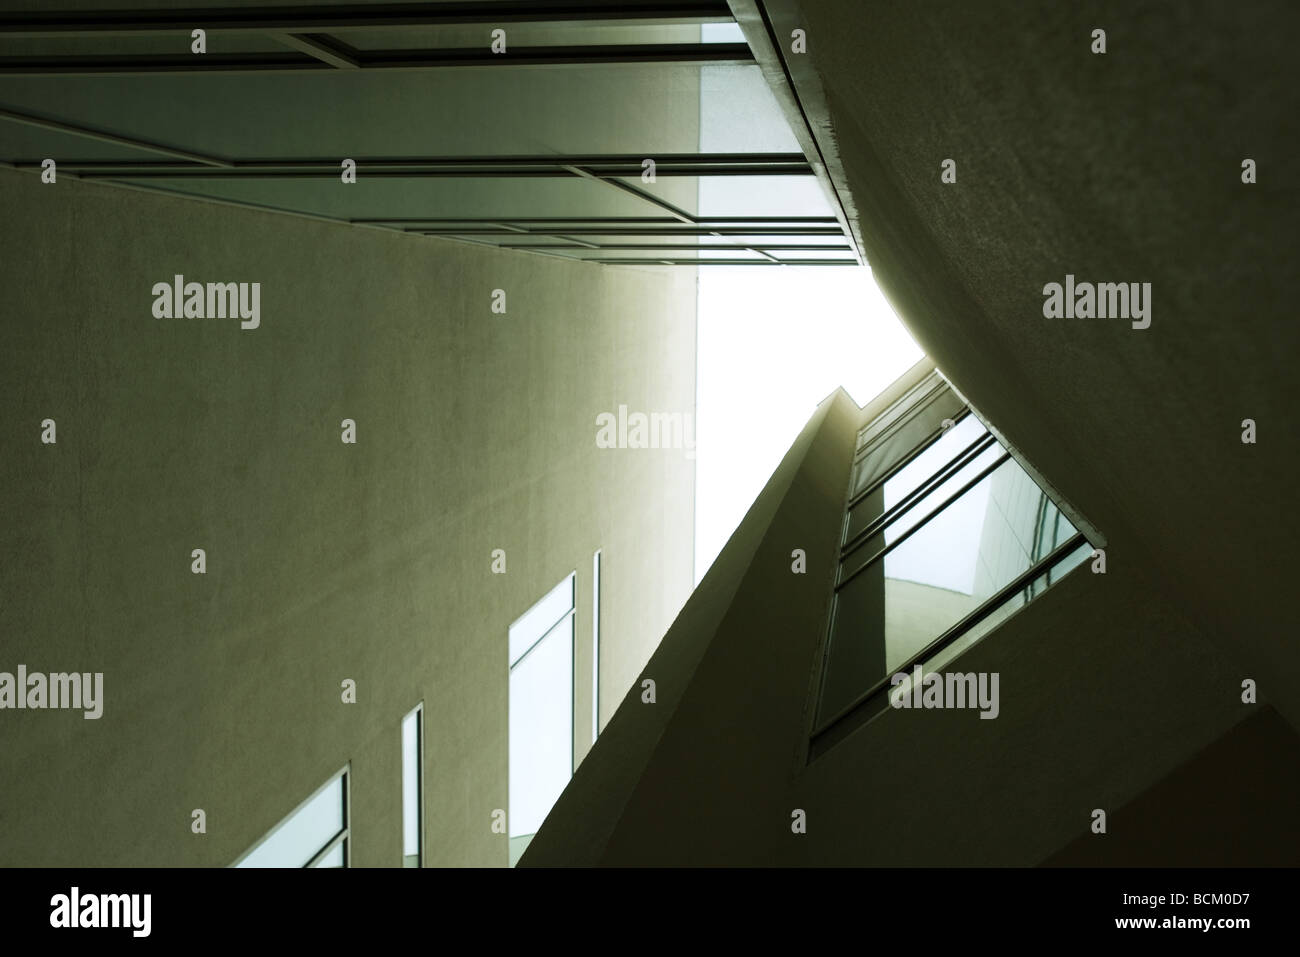 Architectural shot, view from directly below - Stock Image